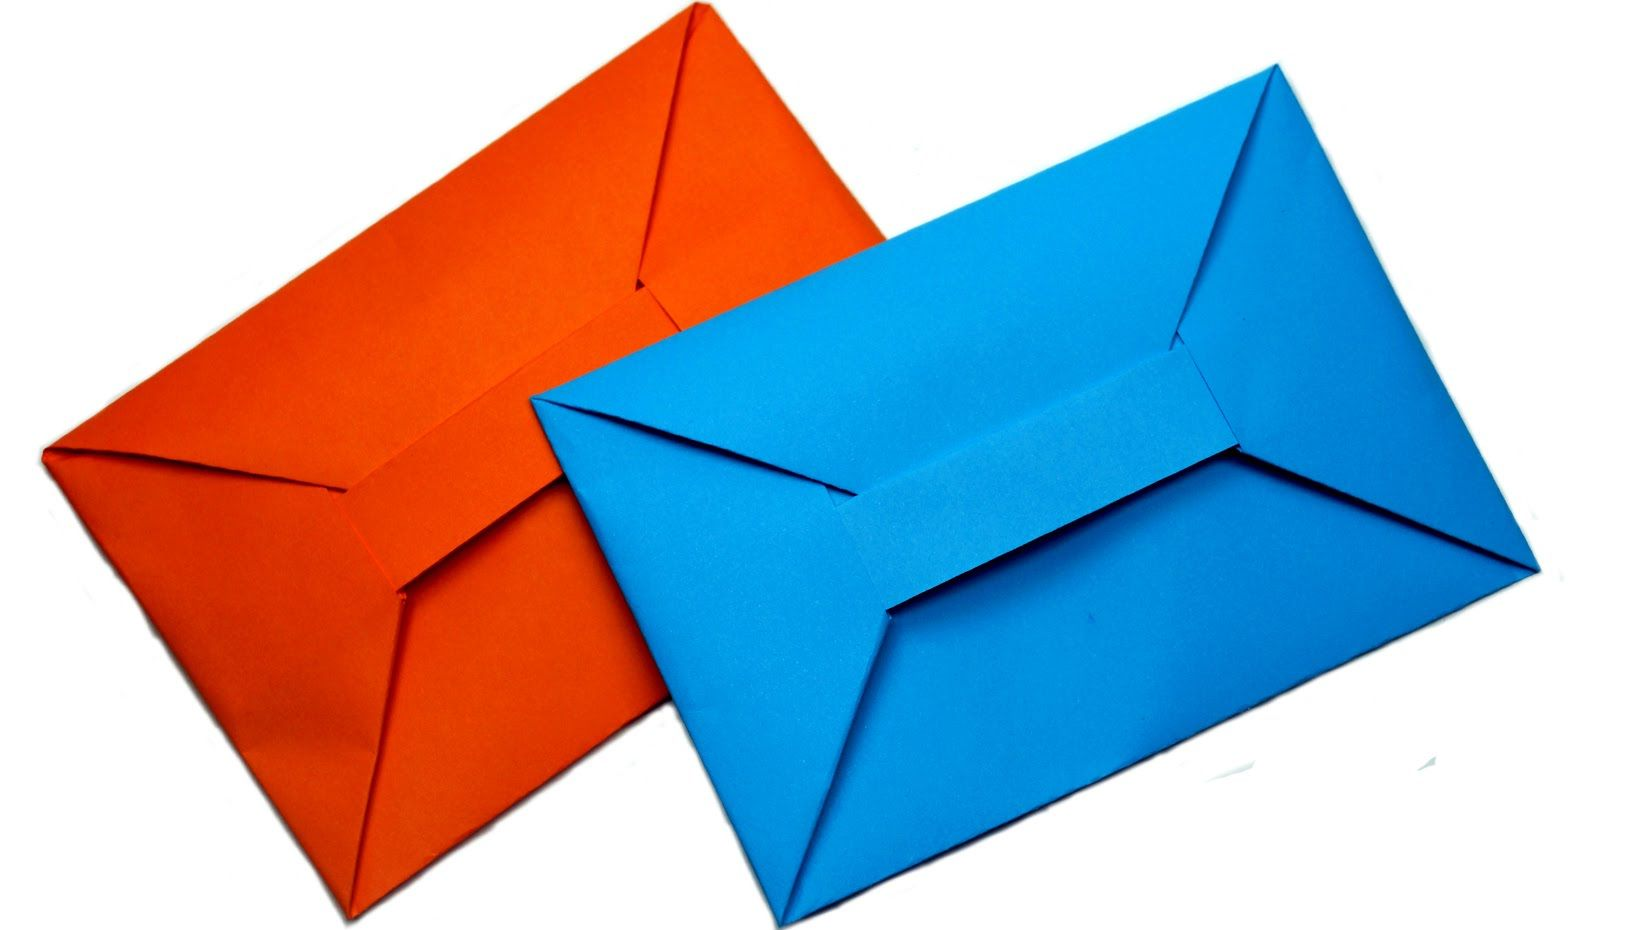 Origami bamboo letterfold folding instructions - Diy Easy Origami Envelope Tutorial Hello Dear Friends In This Video Demonstration Of How To Fold Origami Envelope Simply And Easily